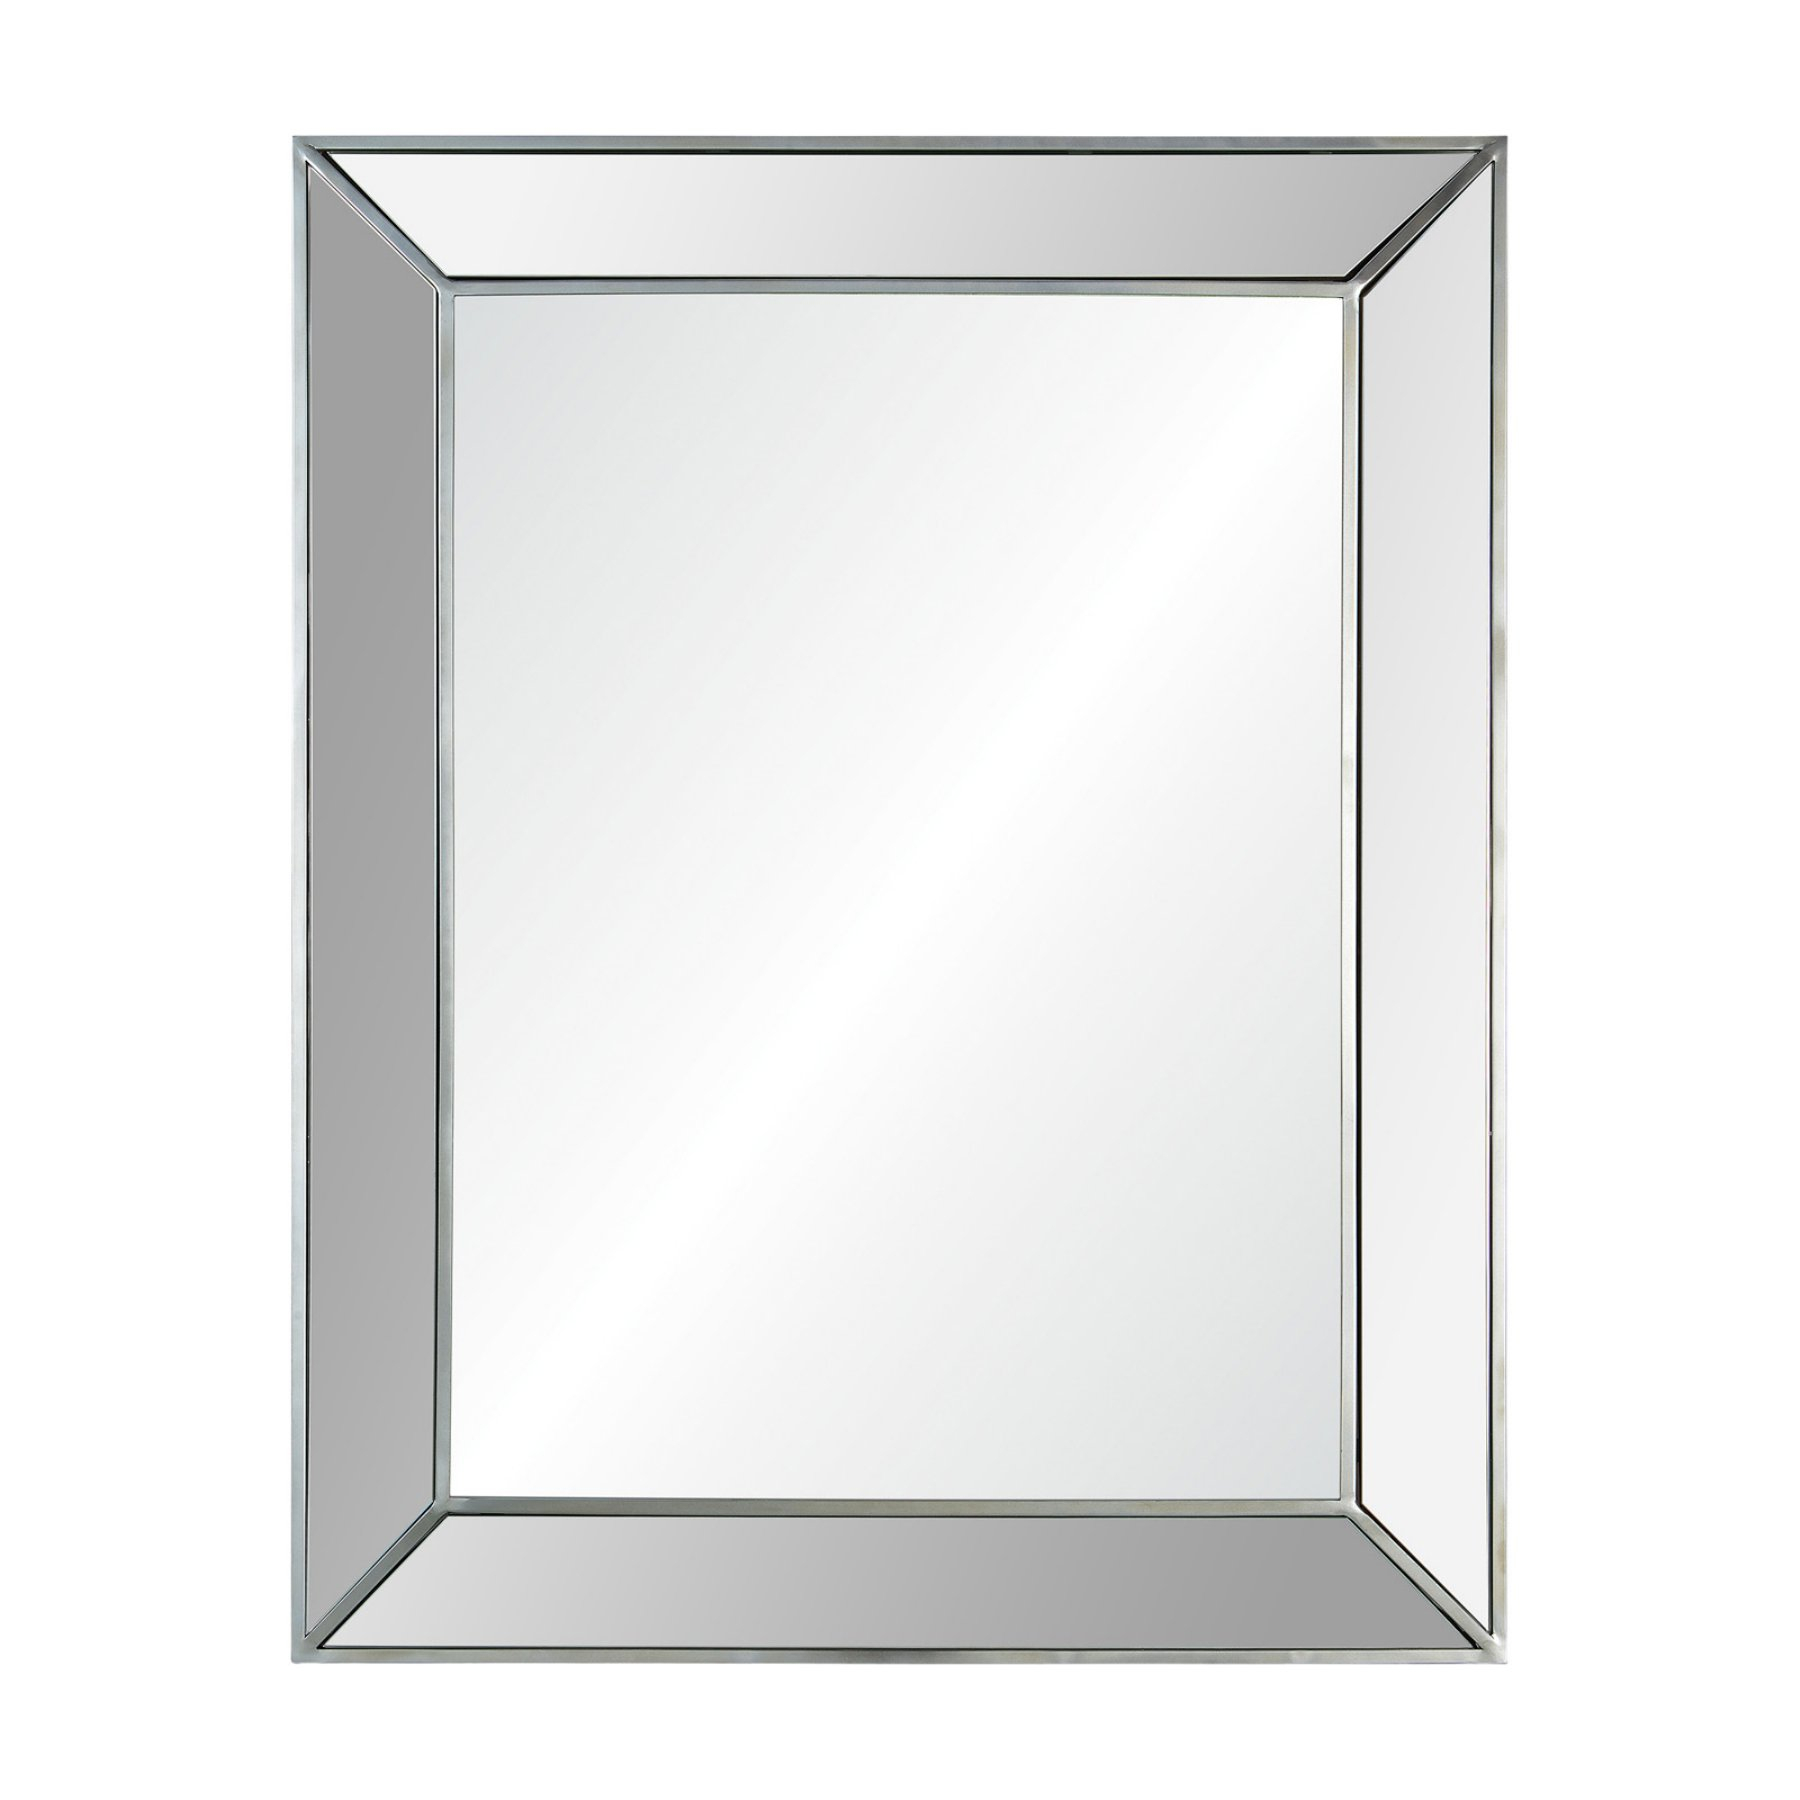 Renwil Ary Wall Mirror   40W X 50H In. In 2019 | Products For Koeller Industrial Metal Wall Mirrors (Photo 13 of 30)